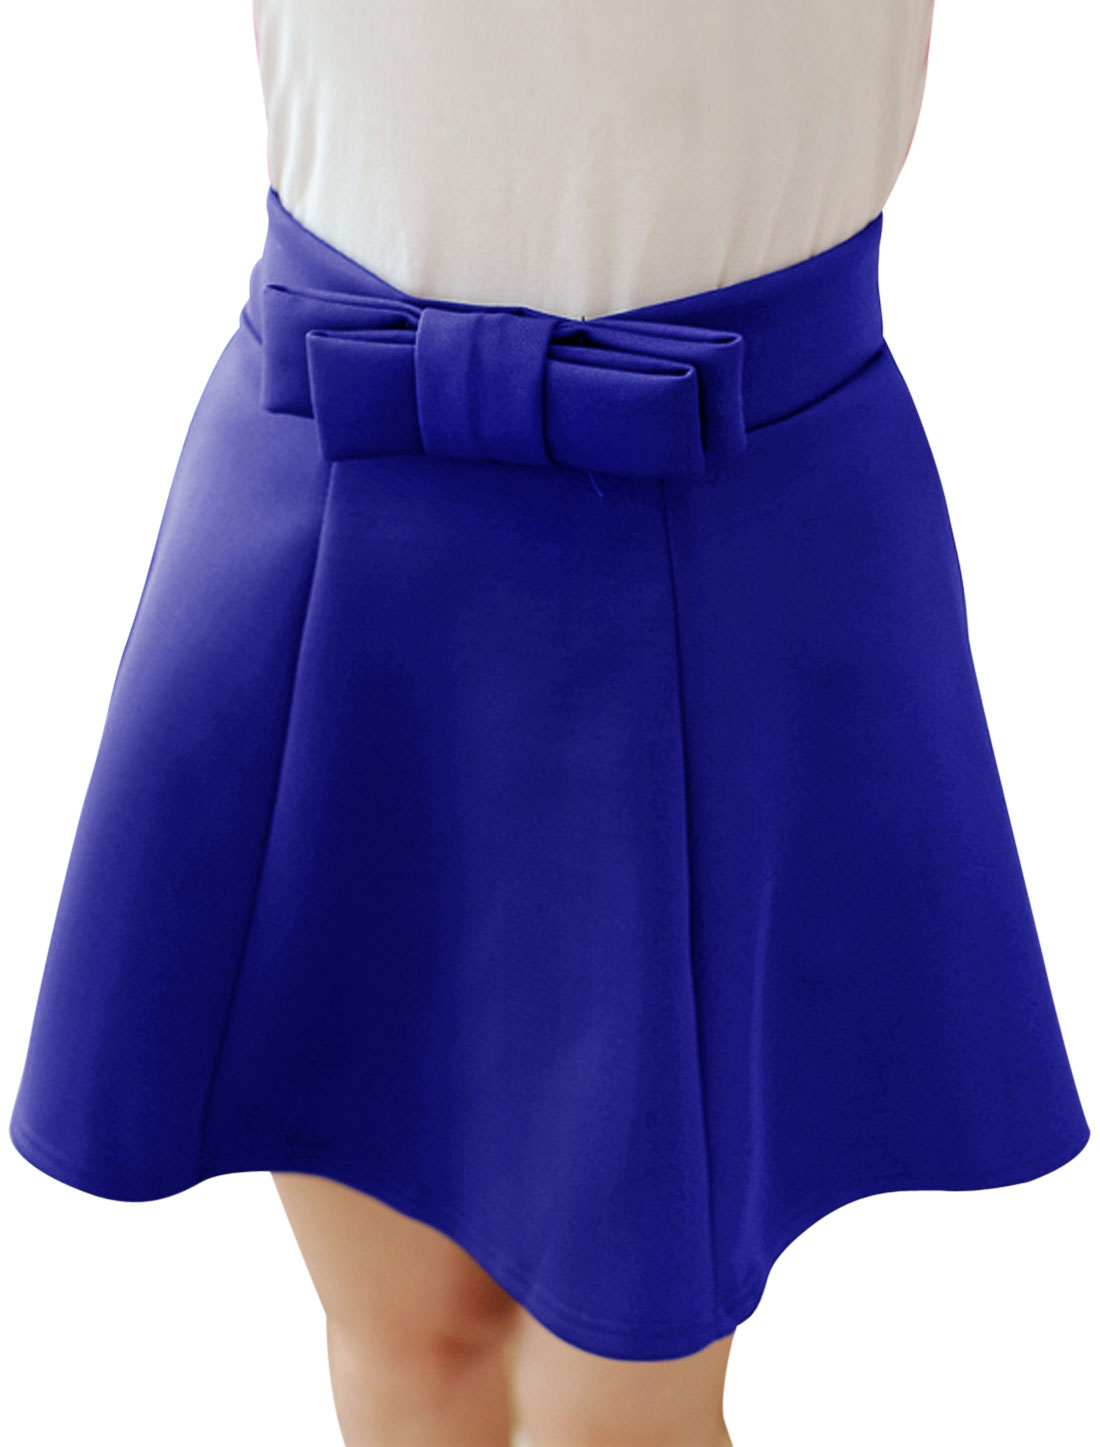 Women Bowknot Decor Front Panel Design Mini Skirt Royal Blue XS